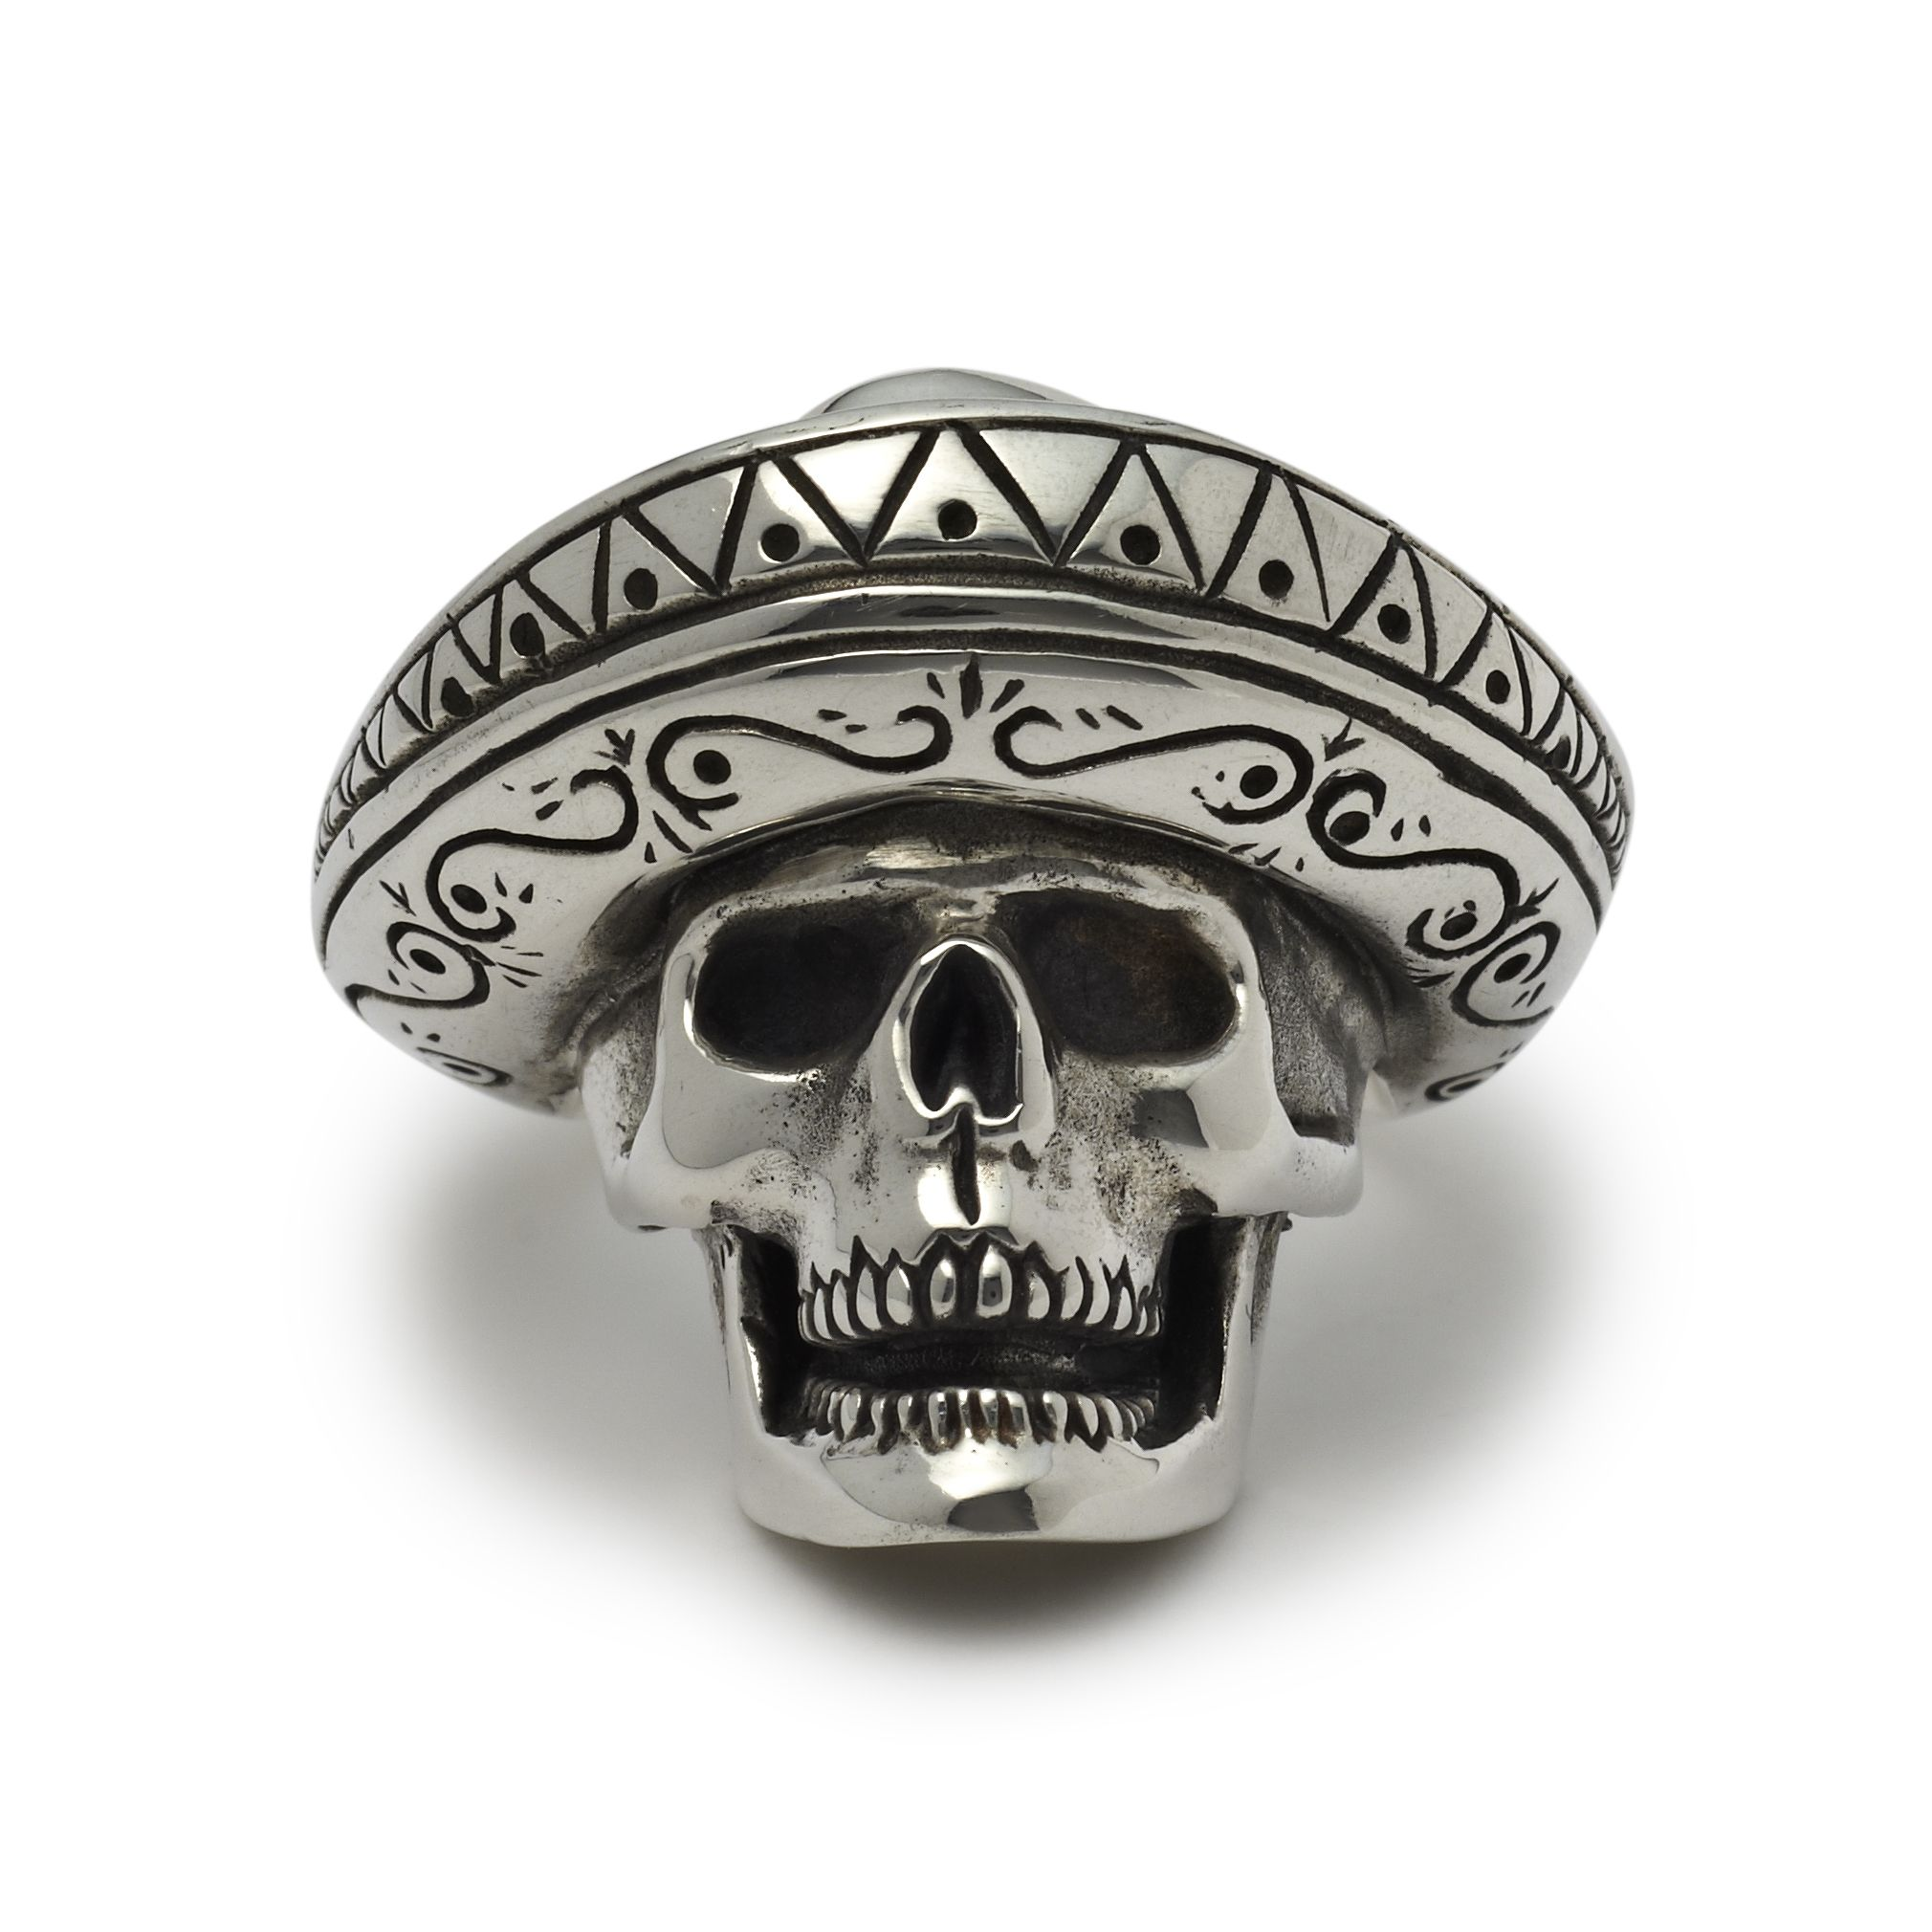 ON SALE Double skull ring handmade in sterling silver